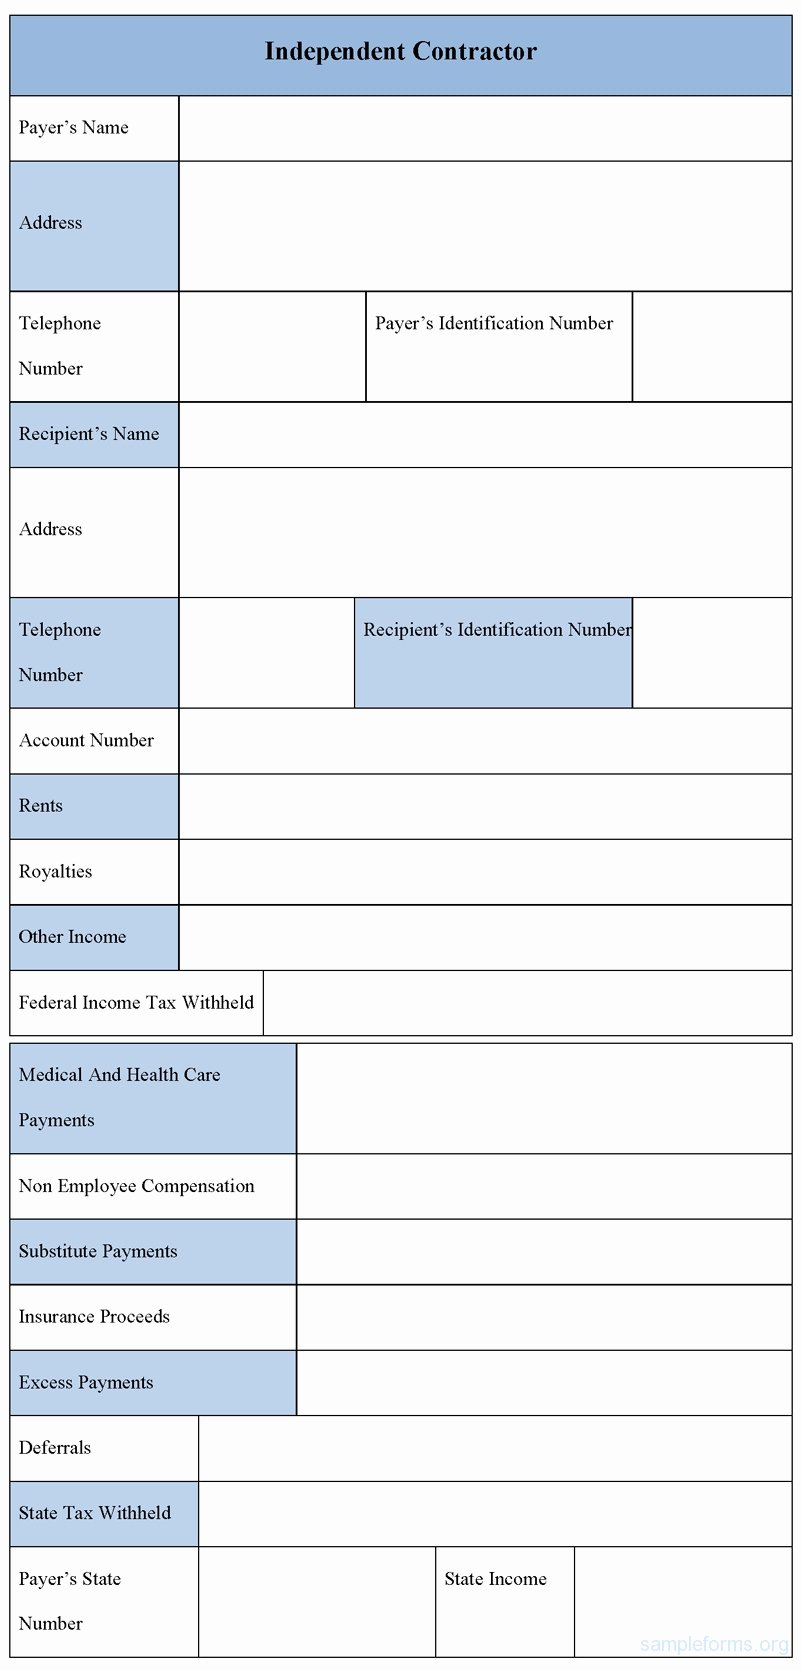 Independent Contractor Invoice Template Fresh Sample Independent Contractor Invoice Invoice Template Ideas